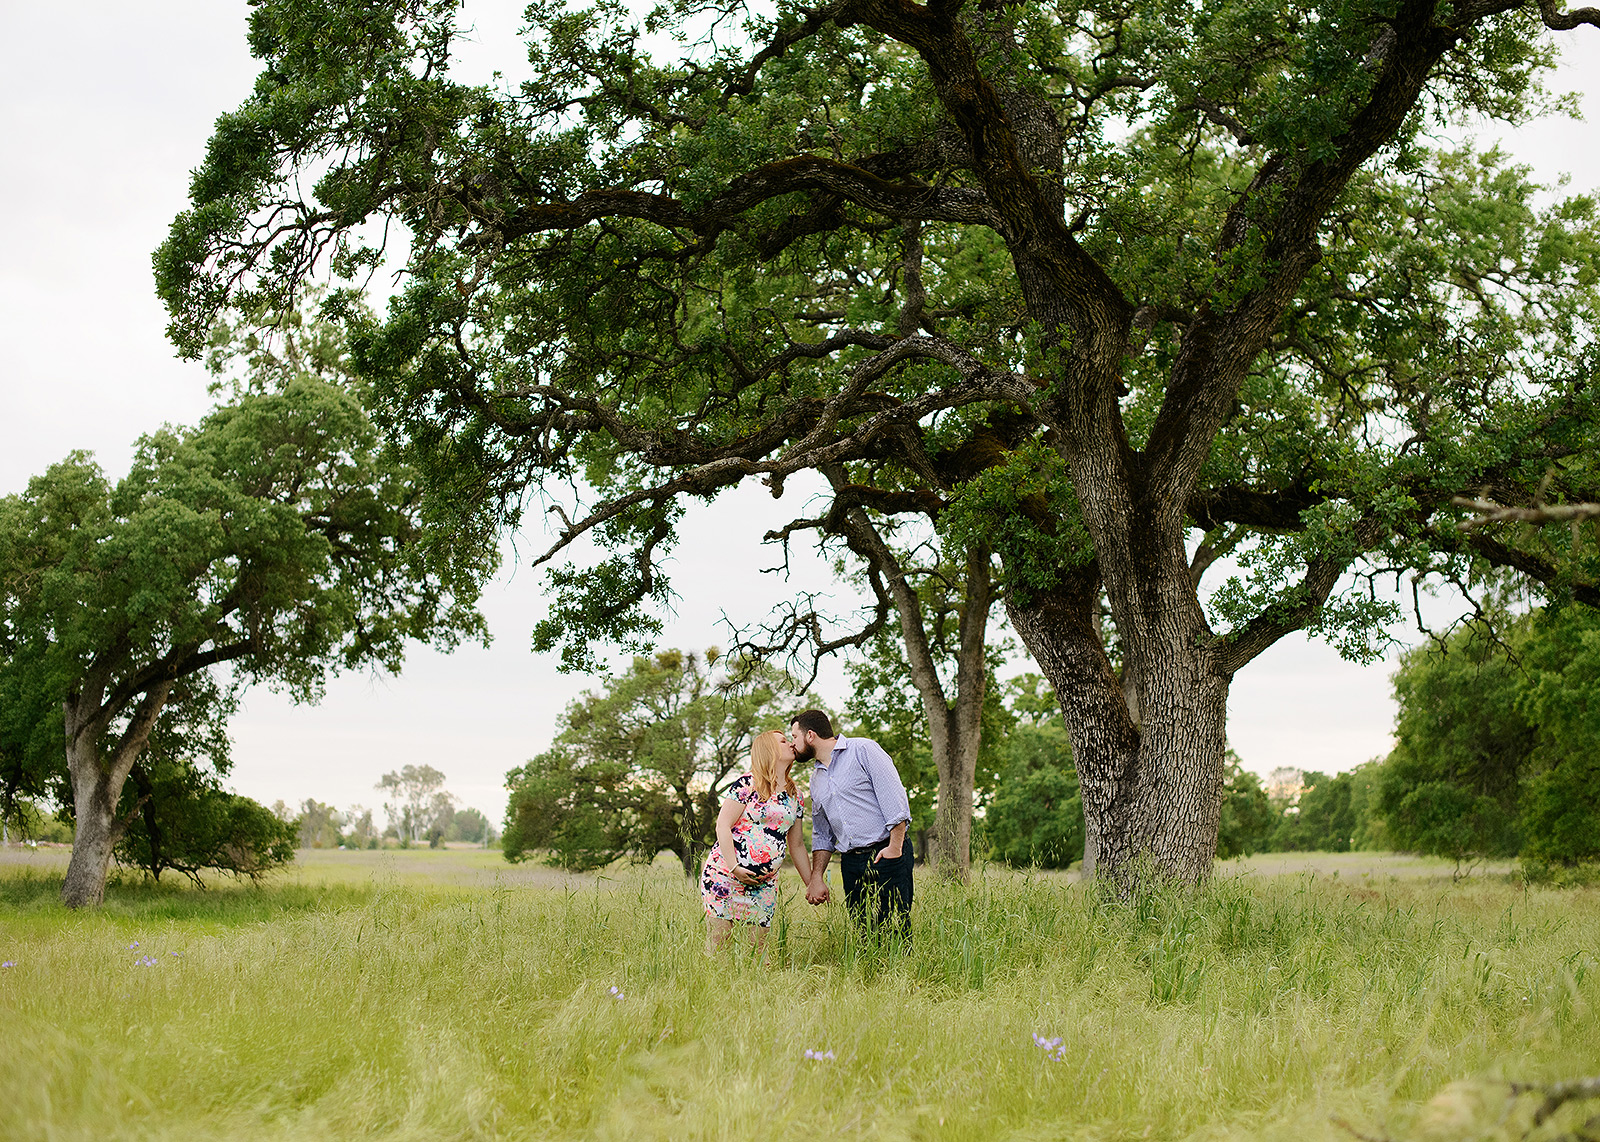 Pregnant couple kissing in field of grass next to a tree in Folsom